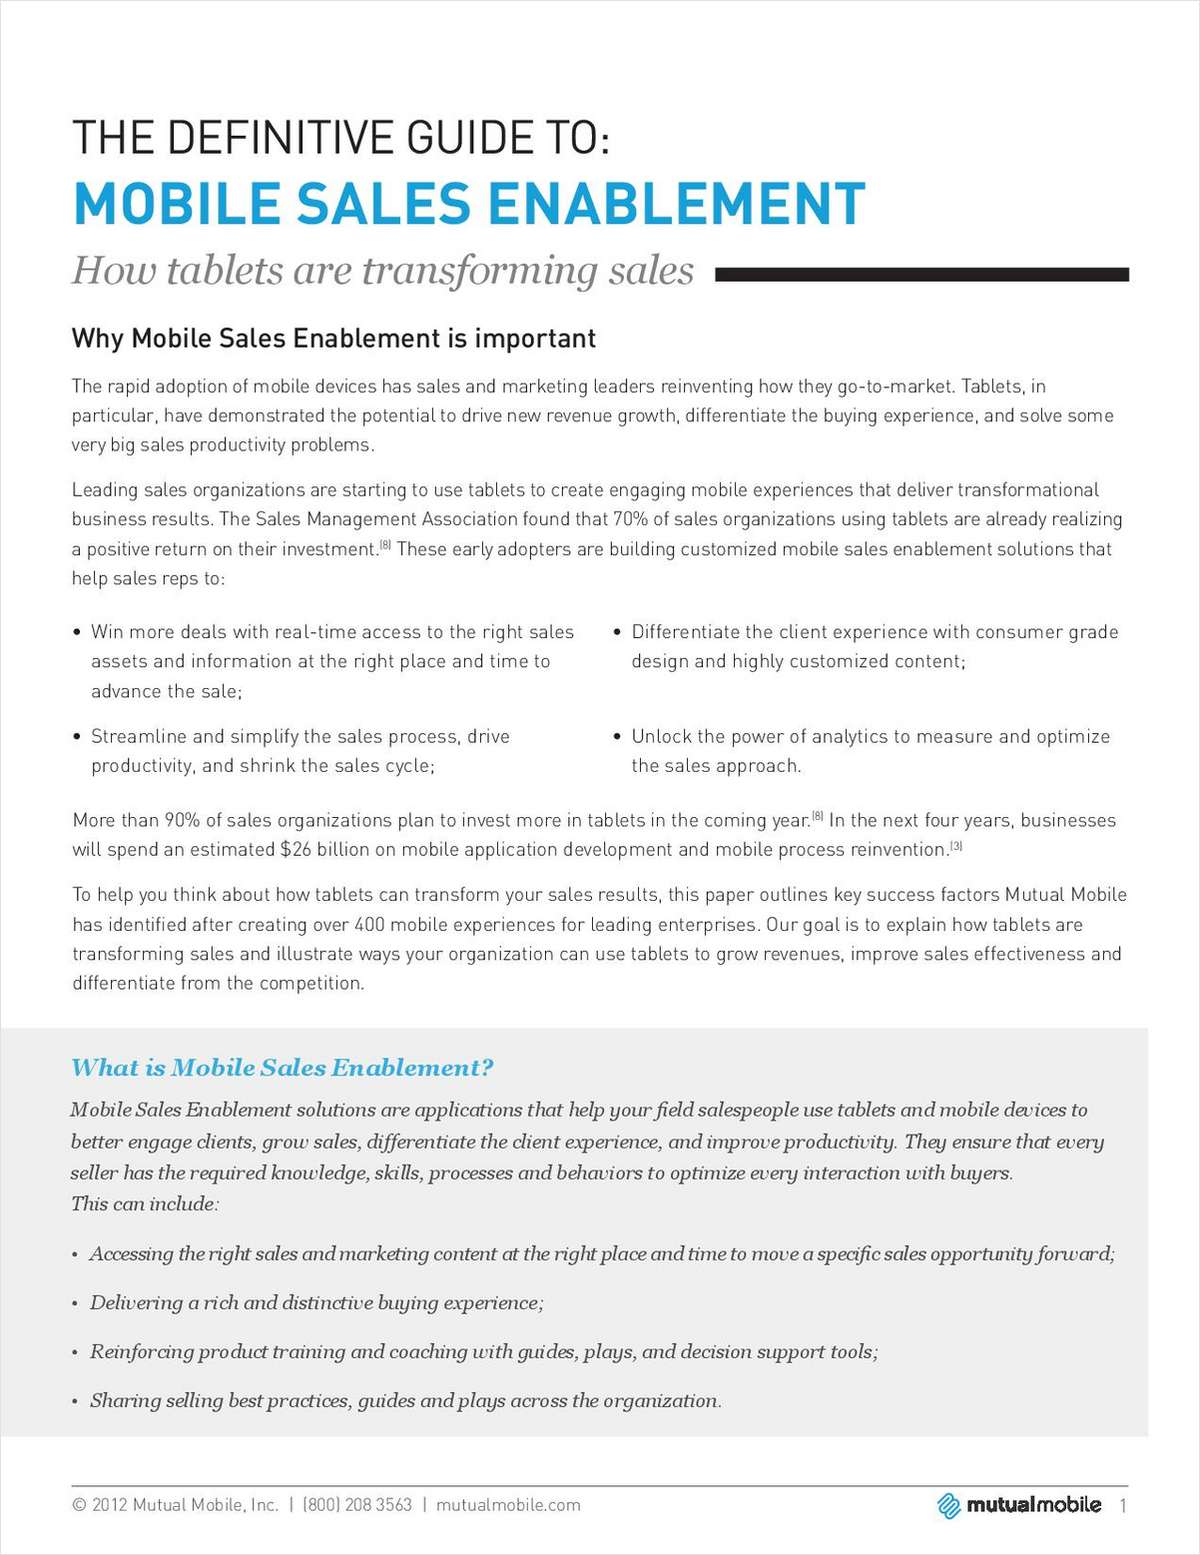 The Definitive Guide to Mobile Sales Enablement